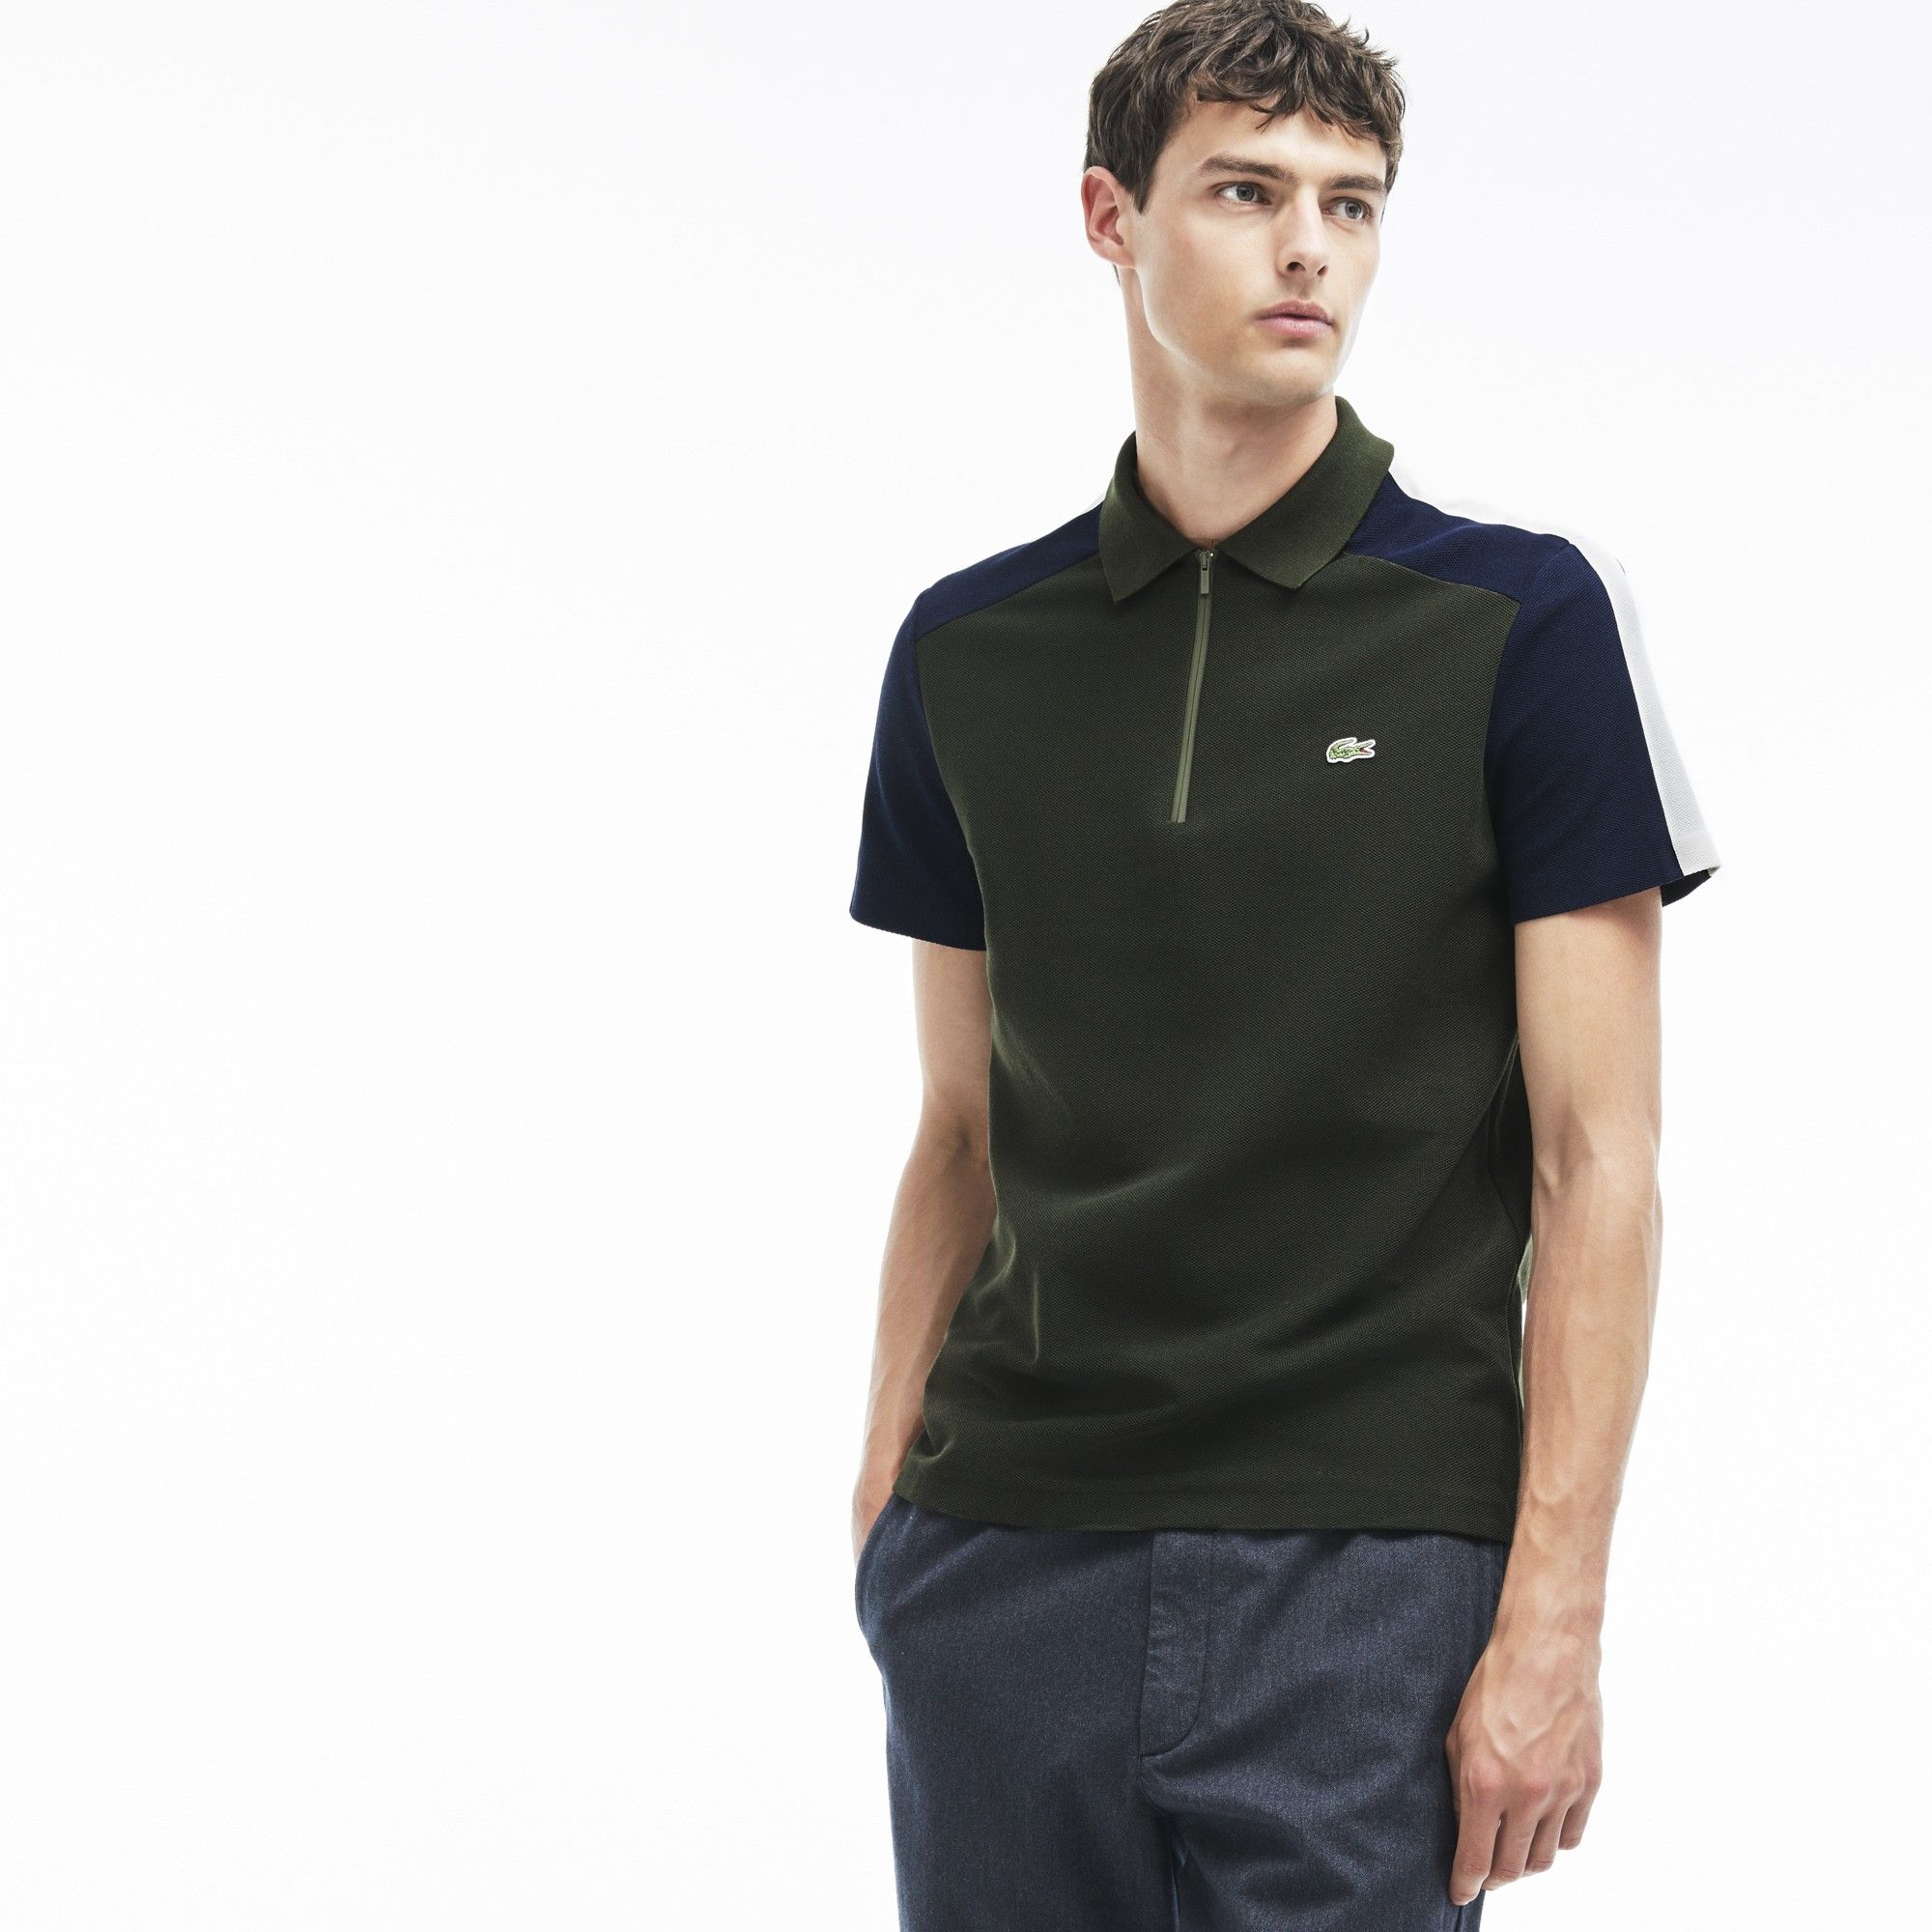 0979a3b8bb844 LACOSTE Men's Made In France Regular Fit Colorblock Piqué Polo -  sherwood/navy blue-flour. #lacoste #cloth #